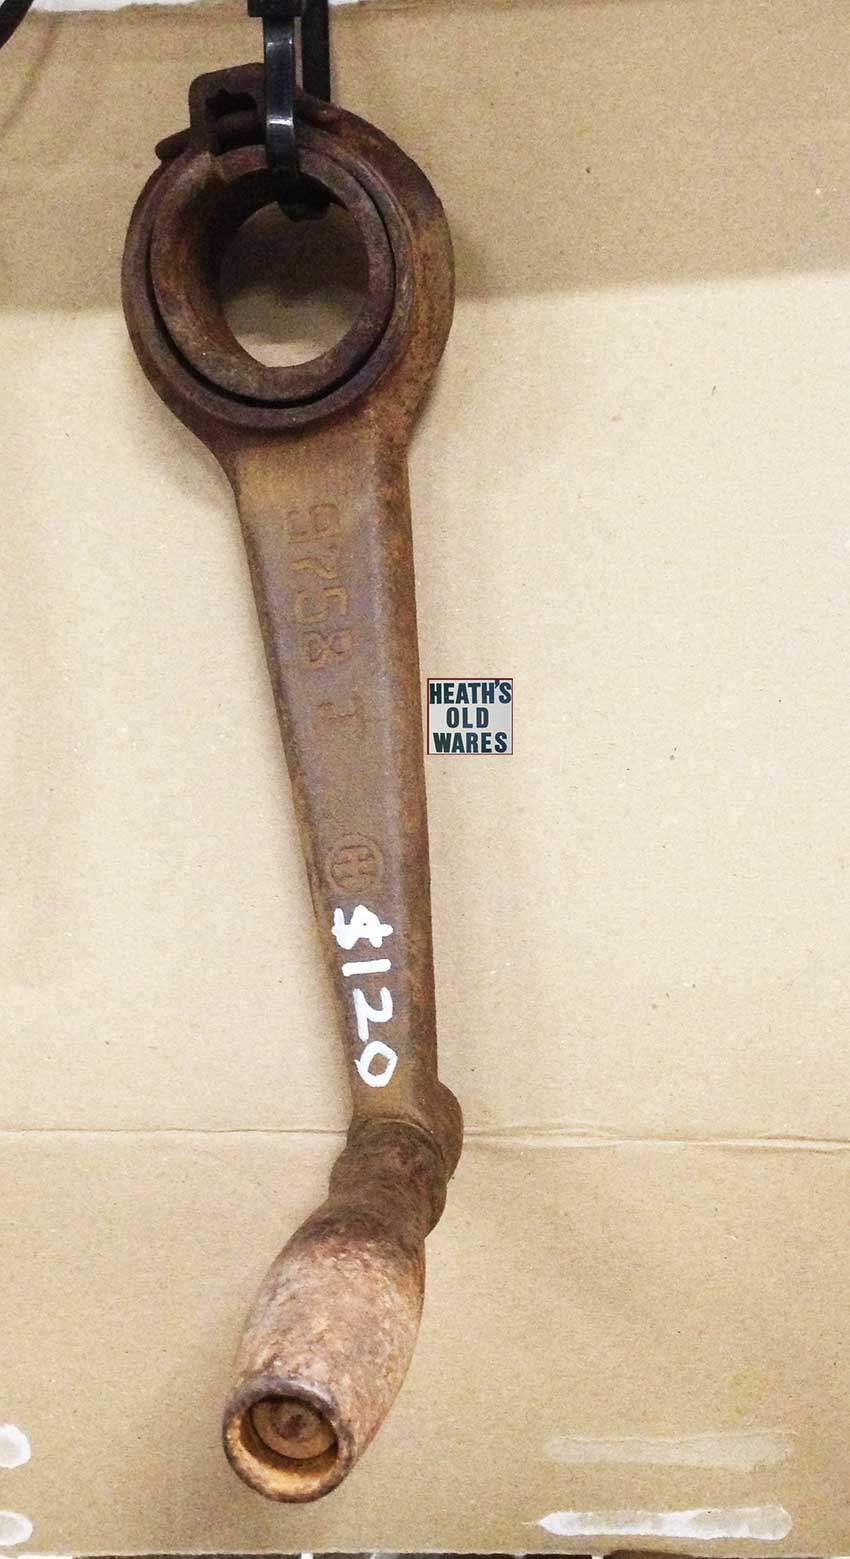 Antique crank handle for sale at Heaths Old Wares, Collectables, Antiques & Industrial Antiques, 19-21 Broadway, Burringbar NSW 2483 Ph 0266771181 open 7 days